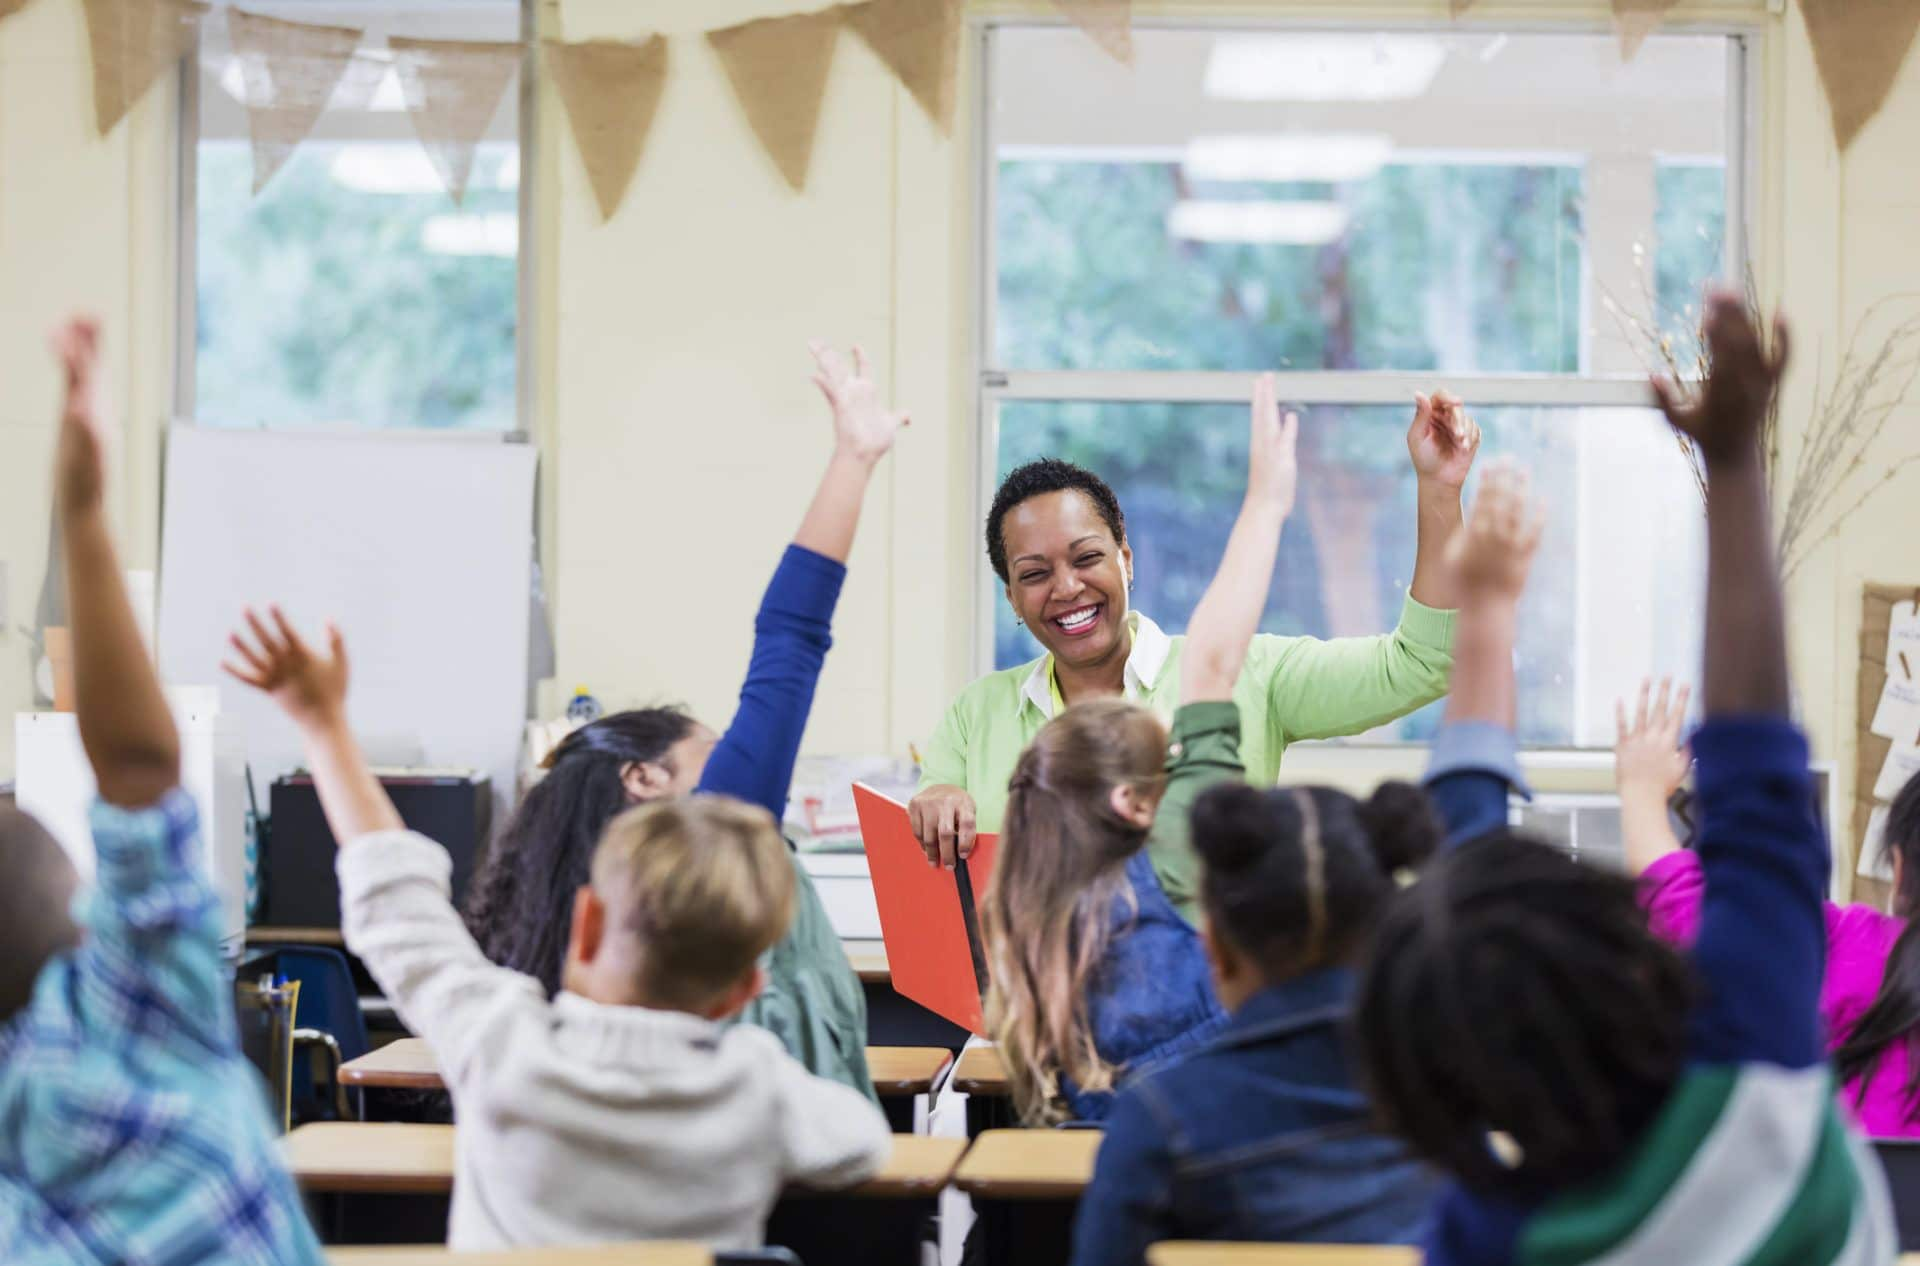 photo of a diverse classroom with students raising hands and teacher smiling